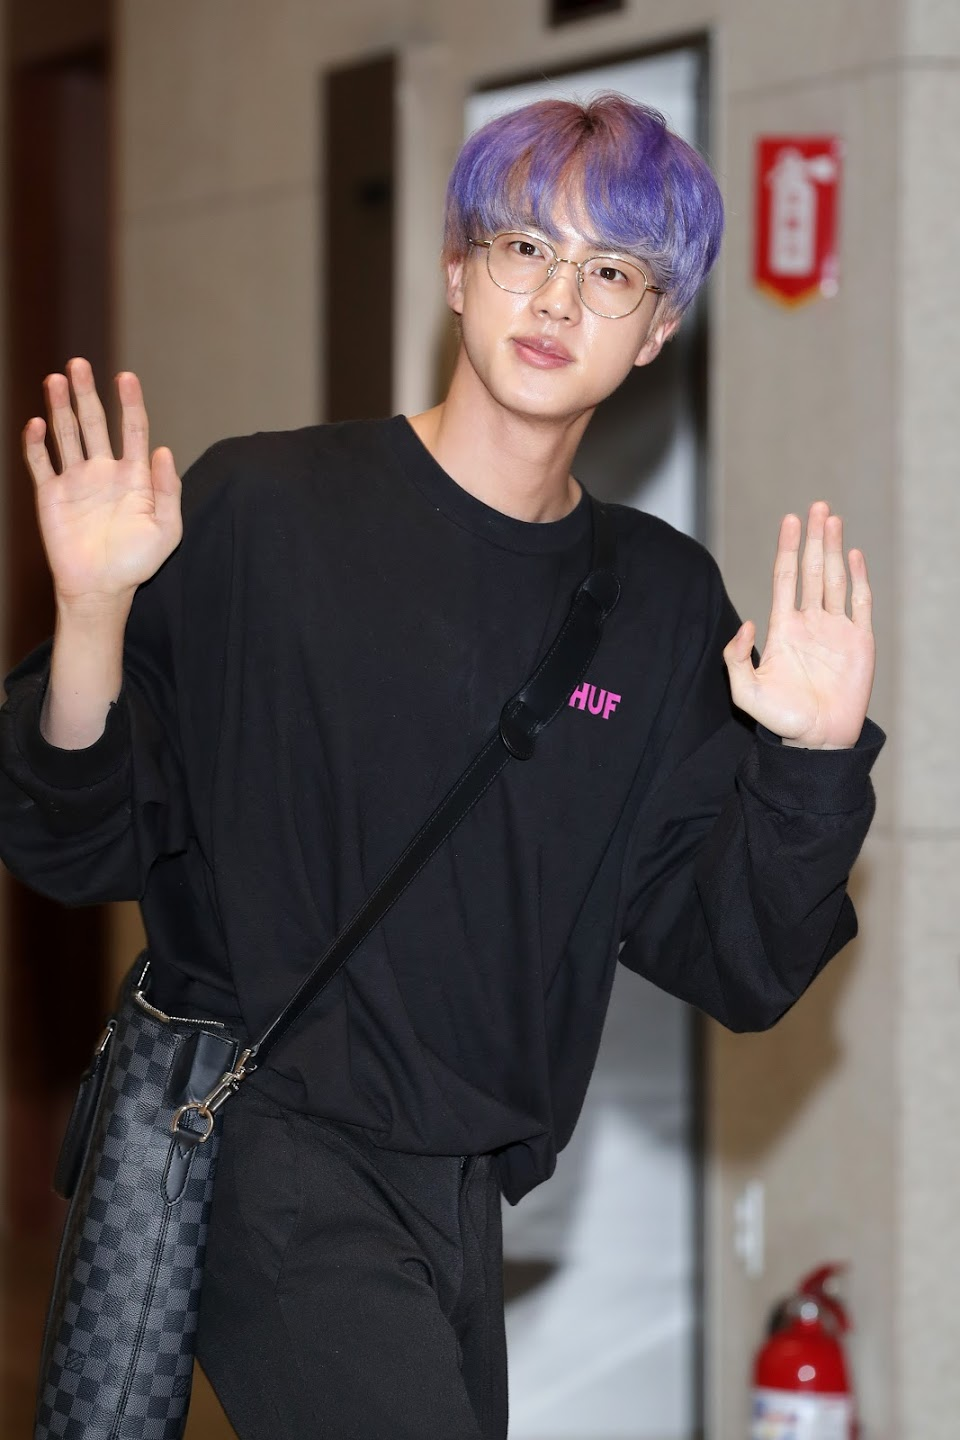 jin-of-boy-band-bts-aka-bangtan-boys-est-vu-à-l'arrivée-news-photo-1568045866